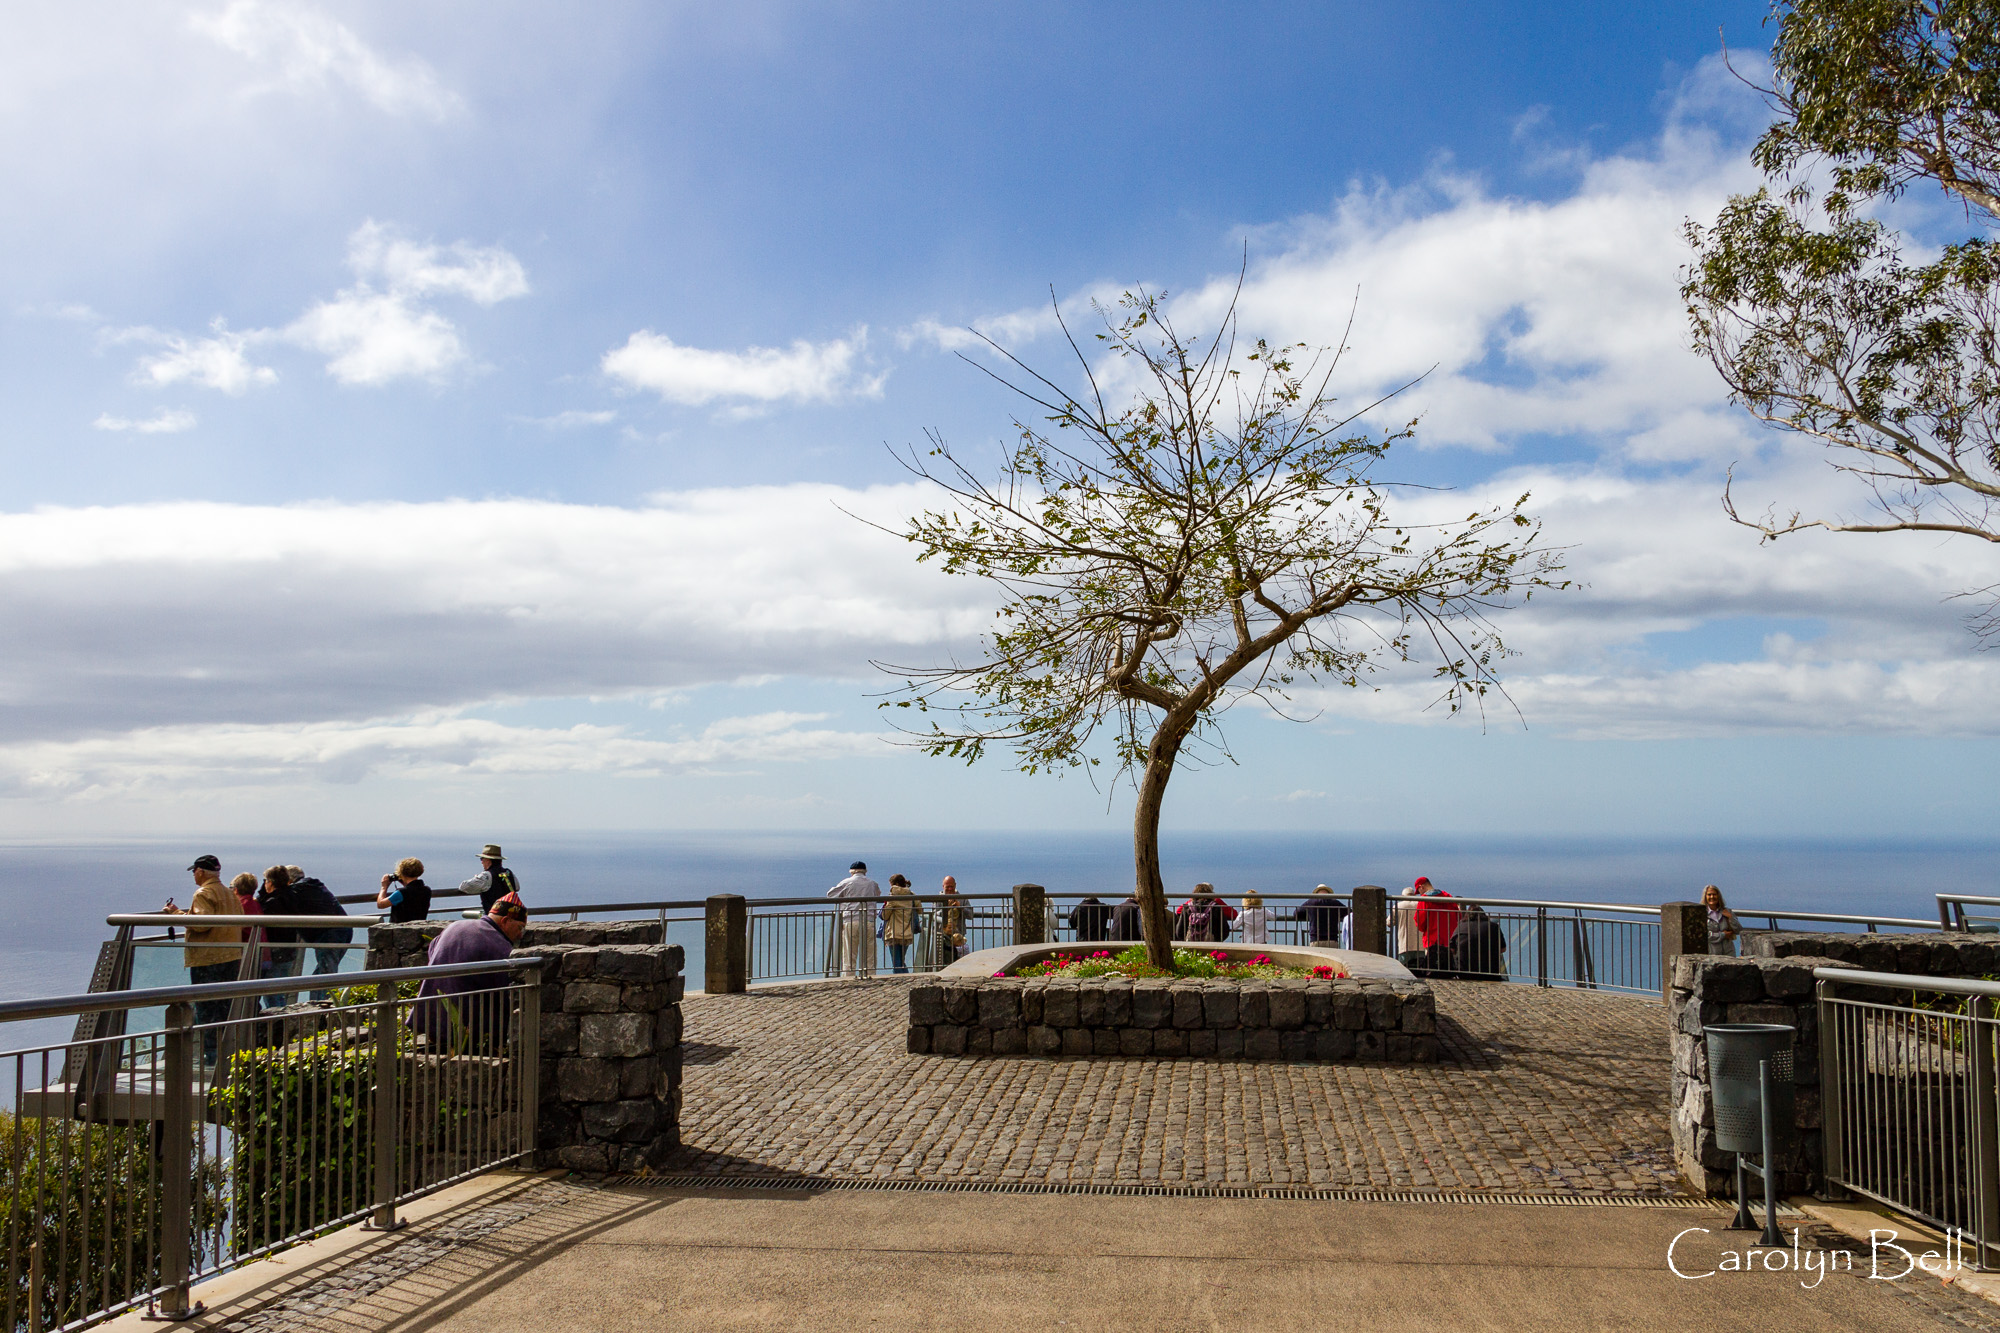 The viewing platform, Cabo Girao